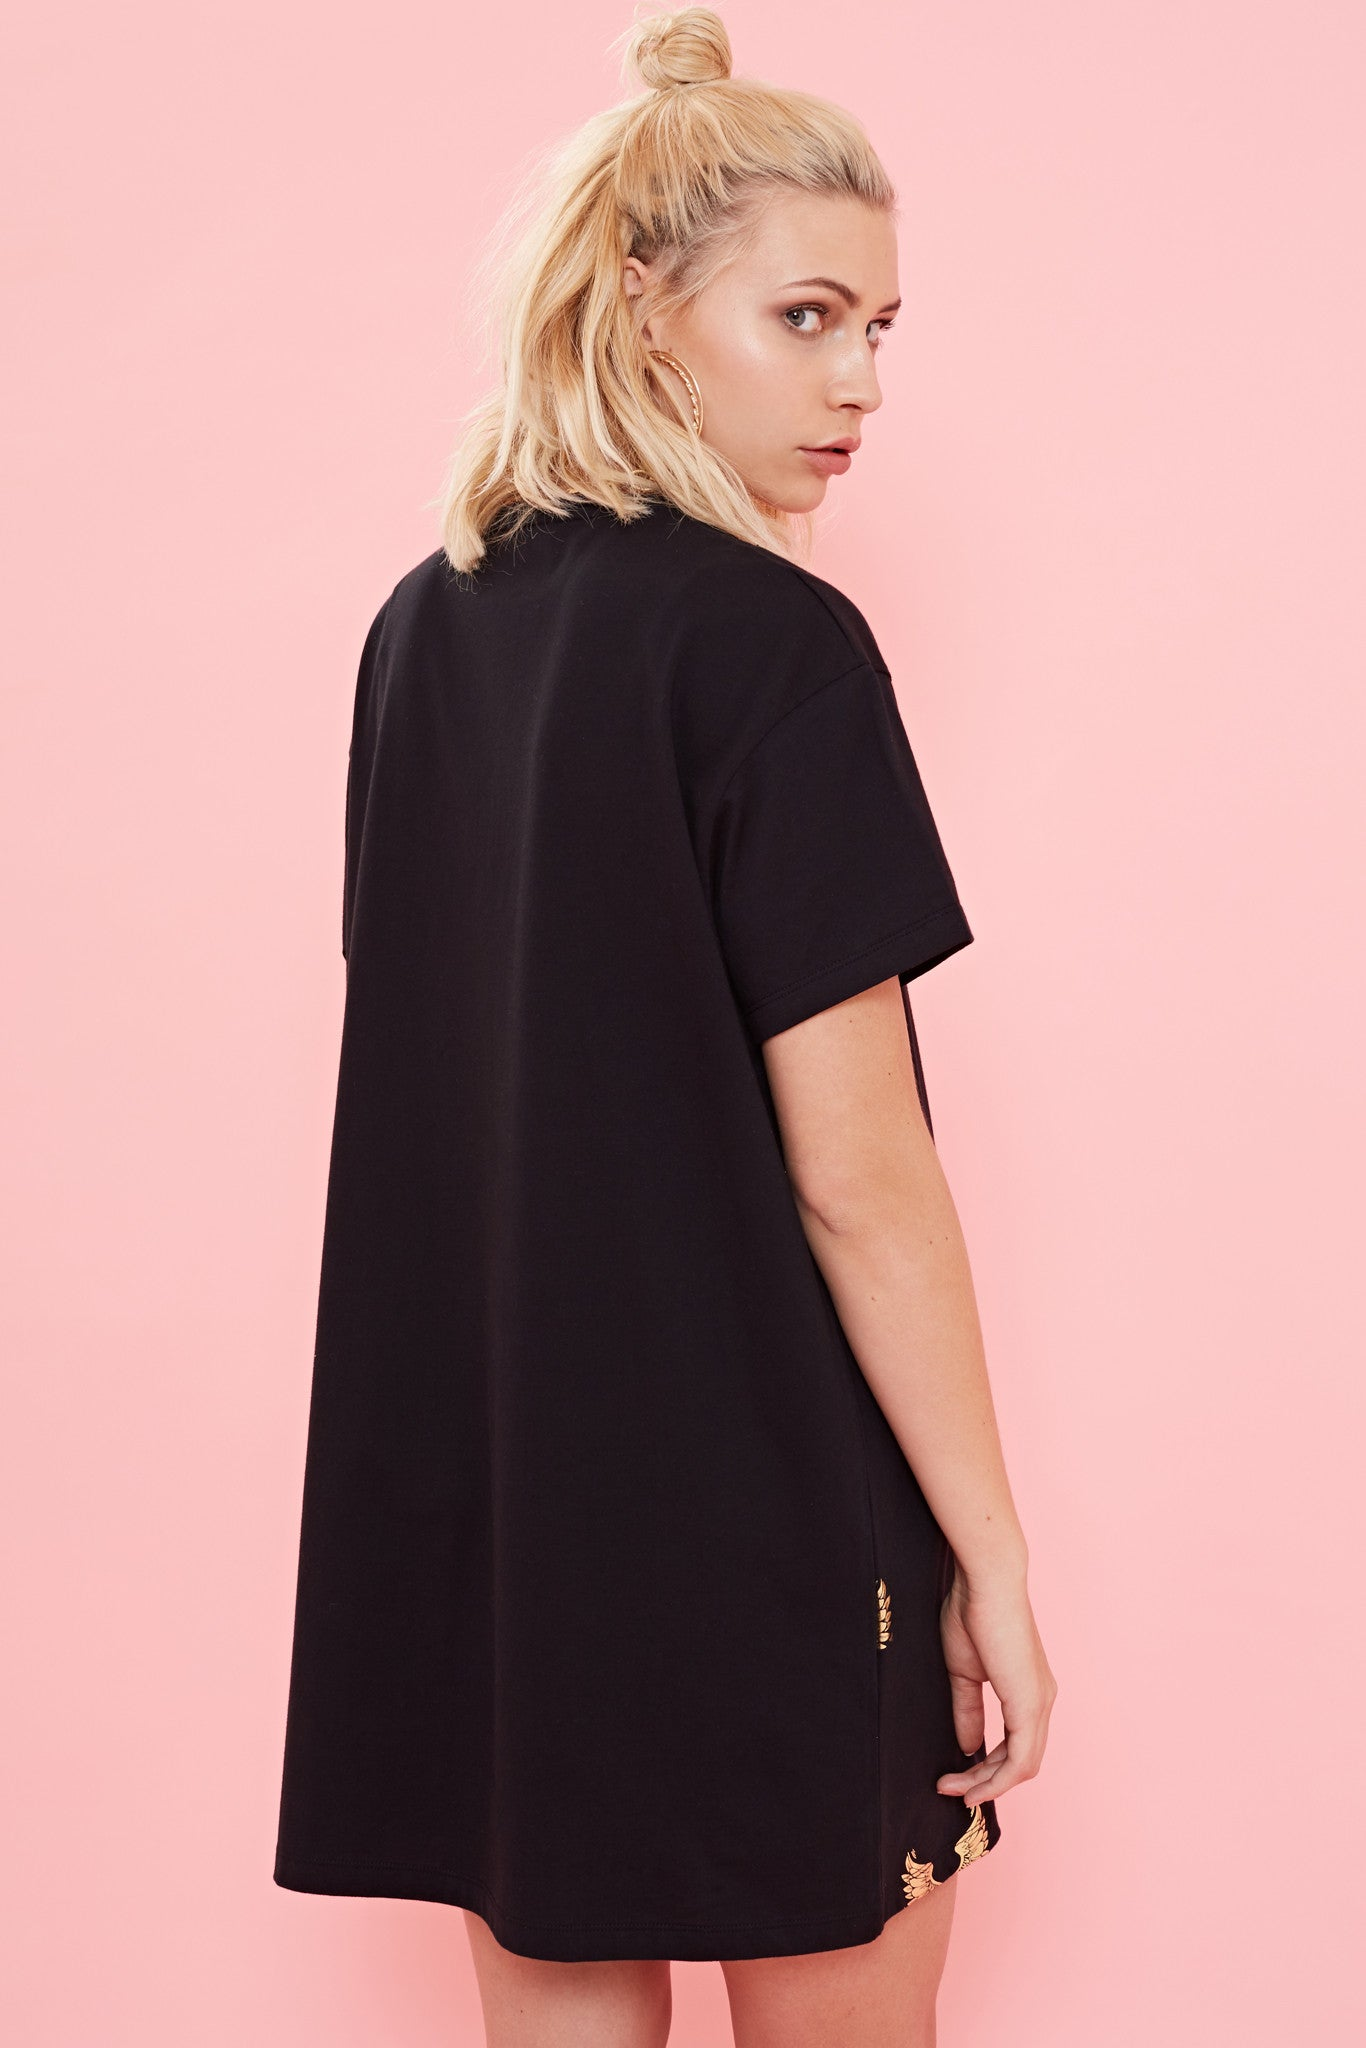 WINGING IT EMBROIDERED DRESS